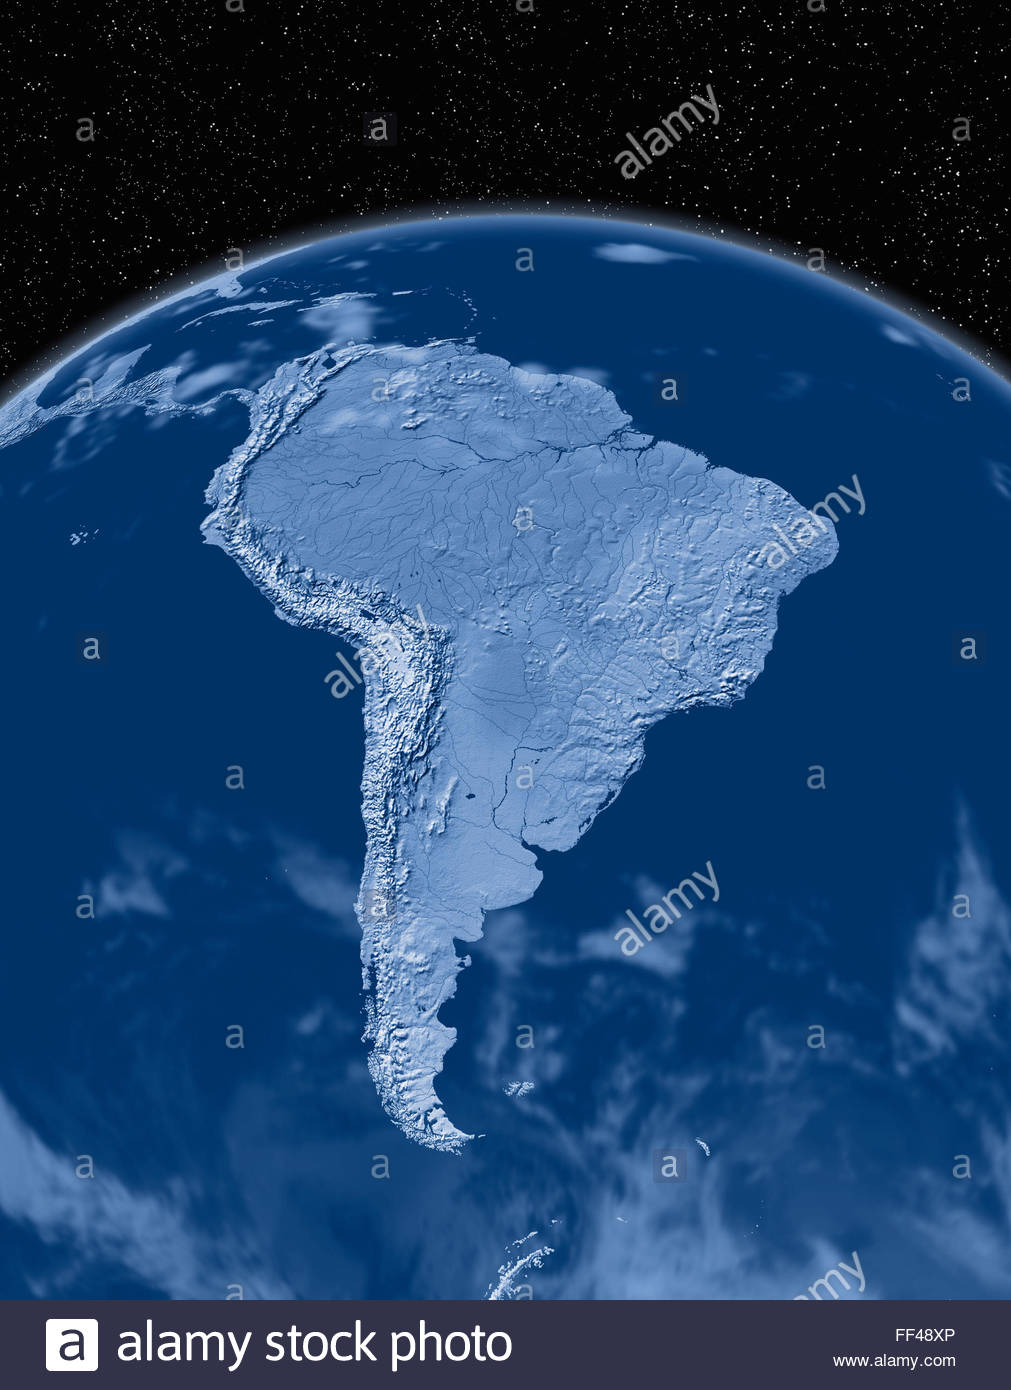 Simulated satellite view of part of the earth from space South America world map space planet globe terrain relief - Stock Image